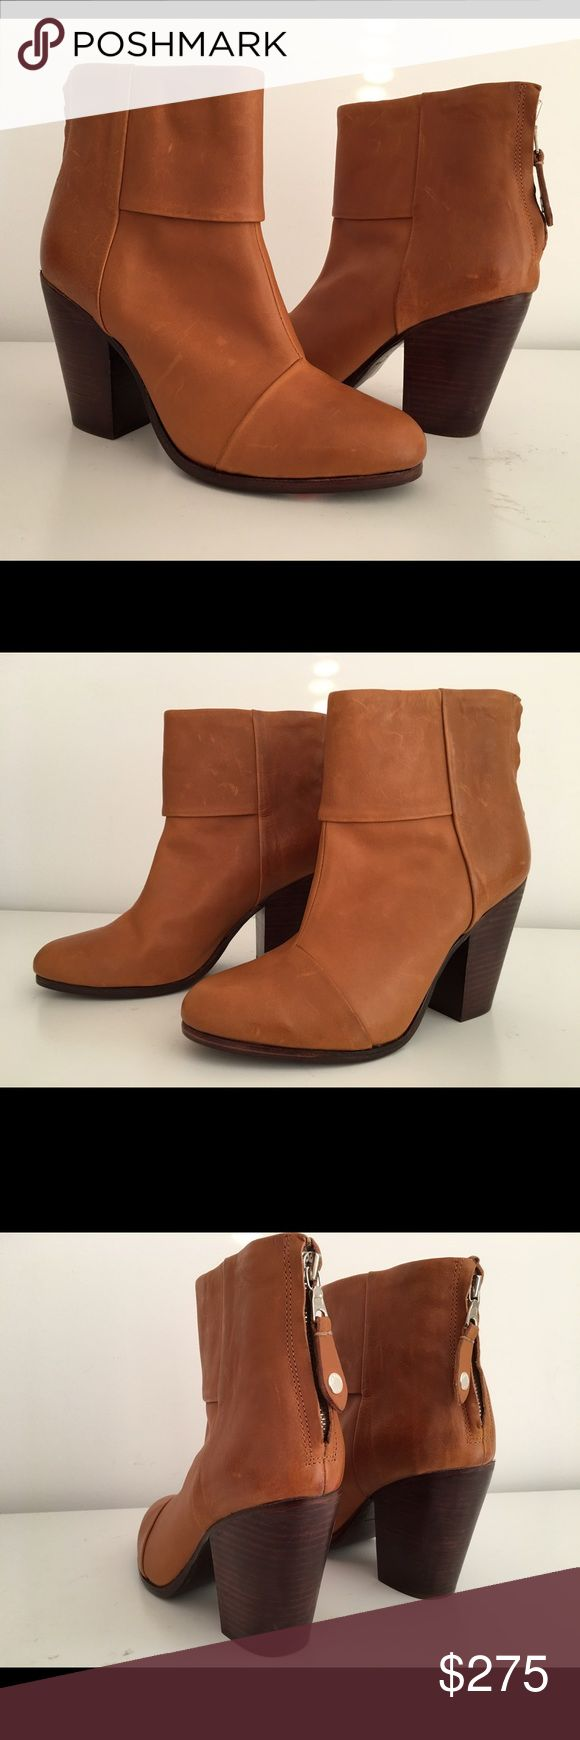 "RAG BONE CLASSIC NEWBURY TAN LEATHER ANKLE BOOTIES RAG BONE CLASSIC NEWBURY TAN LEATHER ANKLE BOOTIES, SIZE 40, STACKED HEEL 4"", LEATHER LINING AND SOLE, BRAND NEW WITH ORIGINAL BOX AND DUST BAG rag & bone Shoes Ankle Boots & Booties"